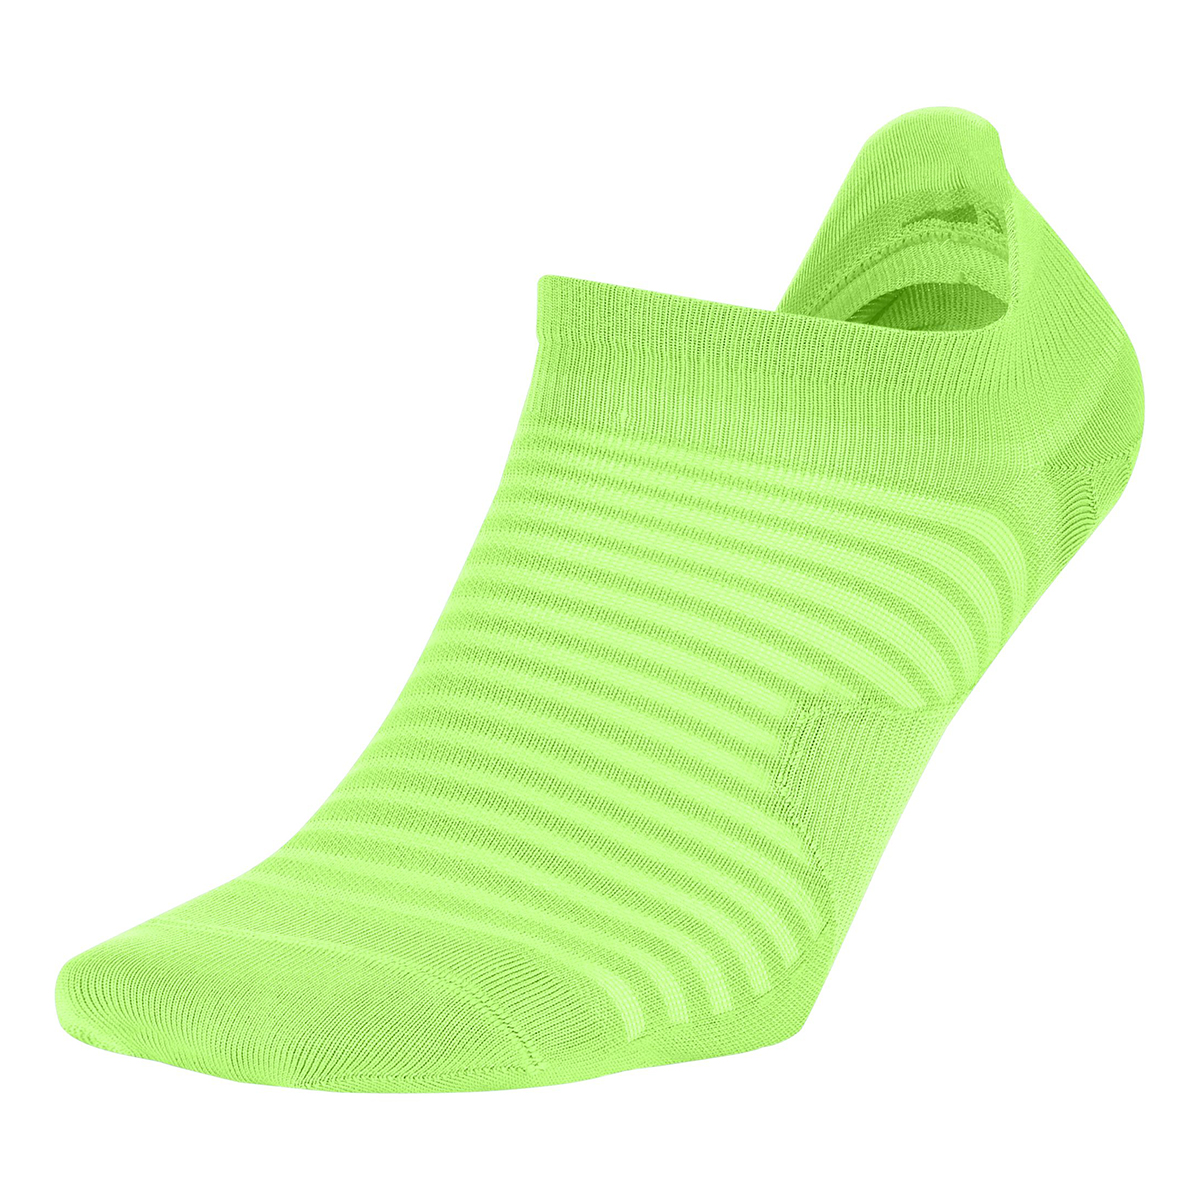 Nike Spark Lightweight No-Show Running Socks - Color: Lime Blast - Size: 4/5.5, Lime Blast, large, image 1